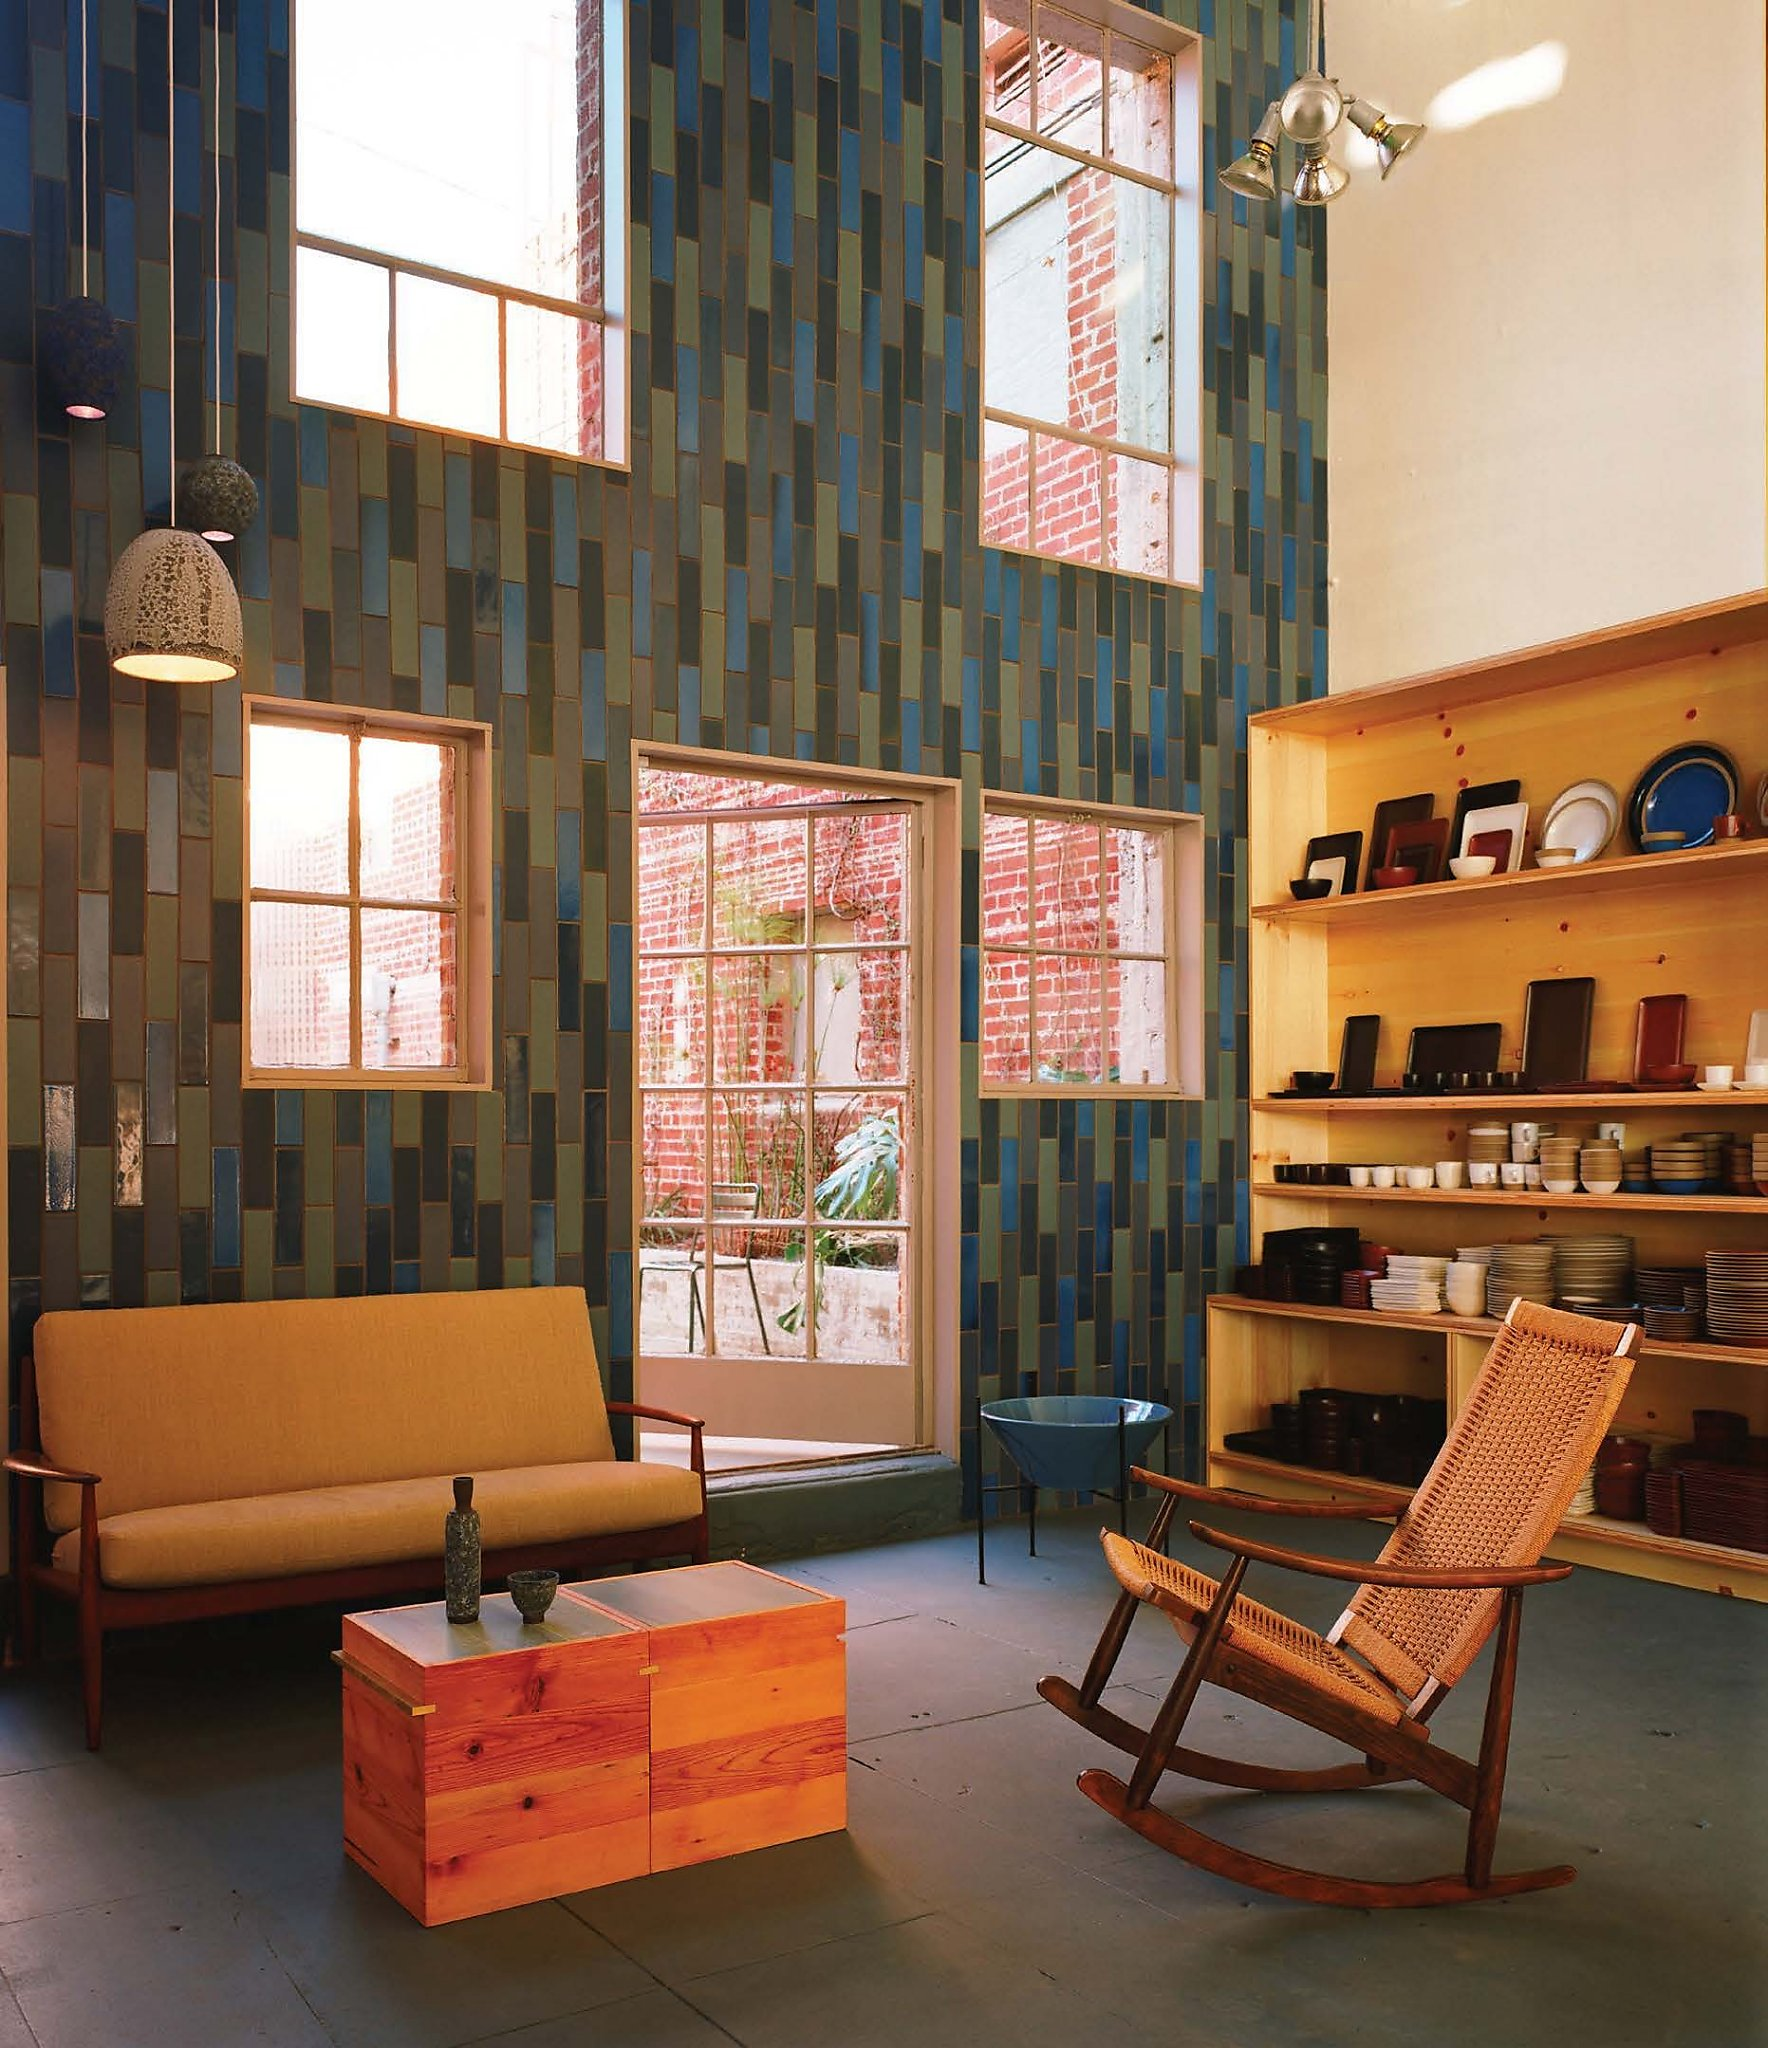 Design squared: A tile revival - SFChronicle com